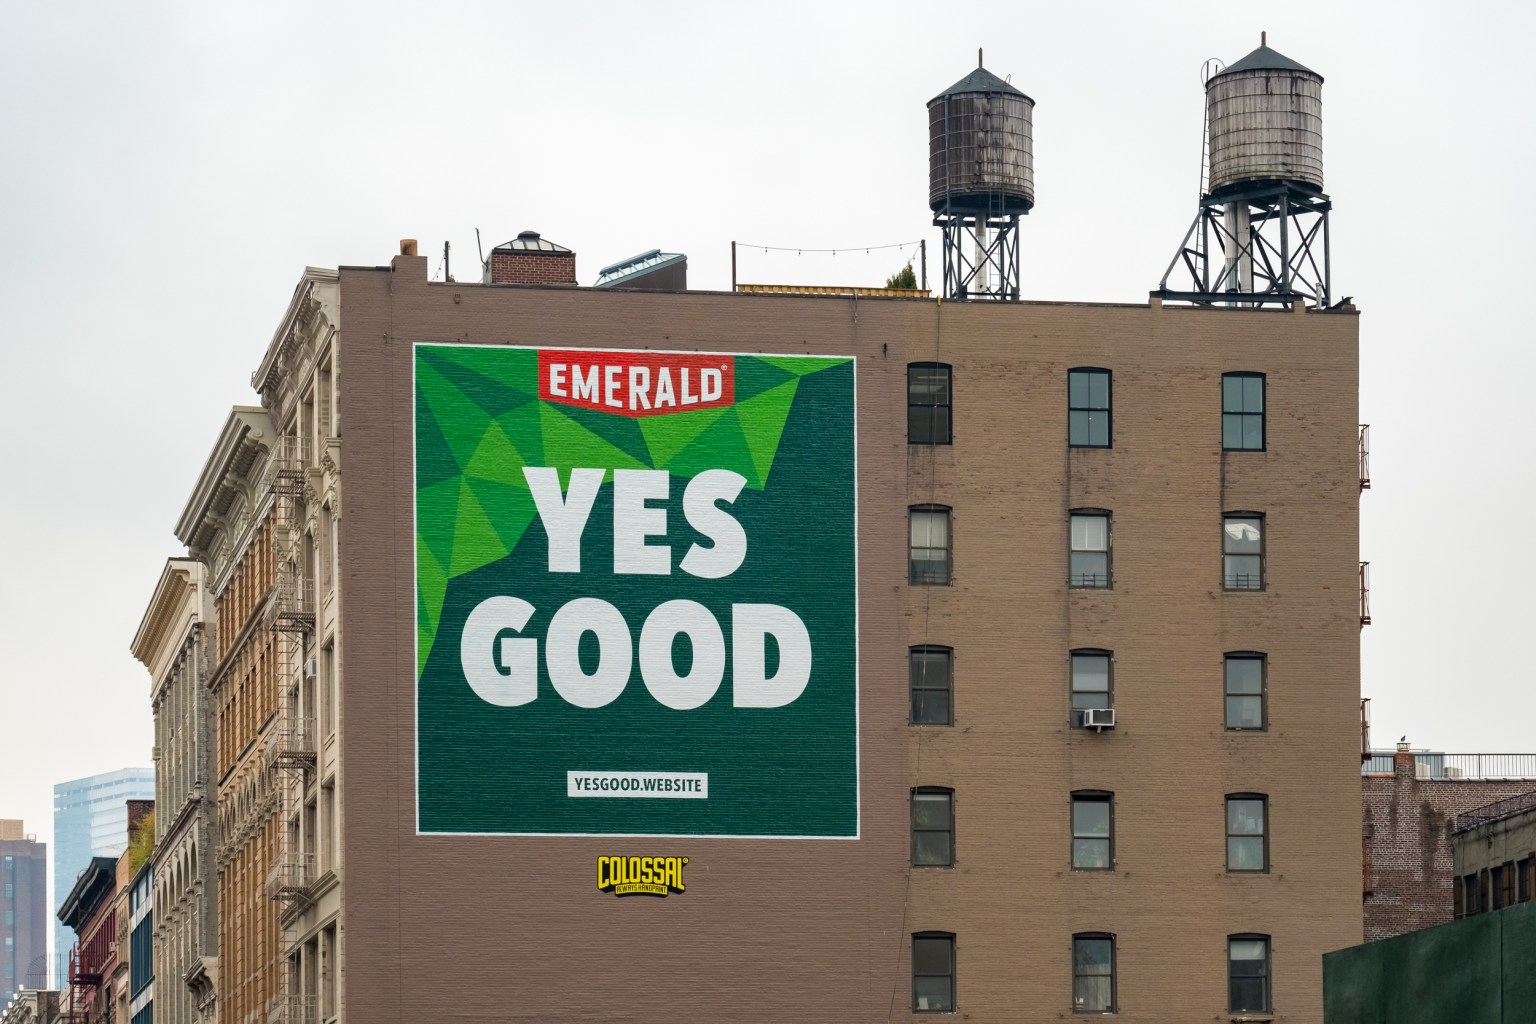 Emerald Nuts – Yes Good